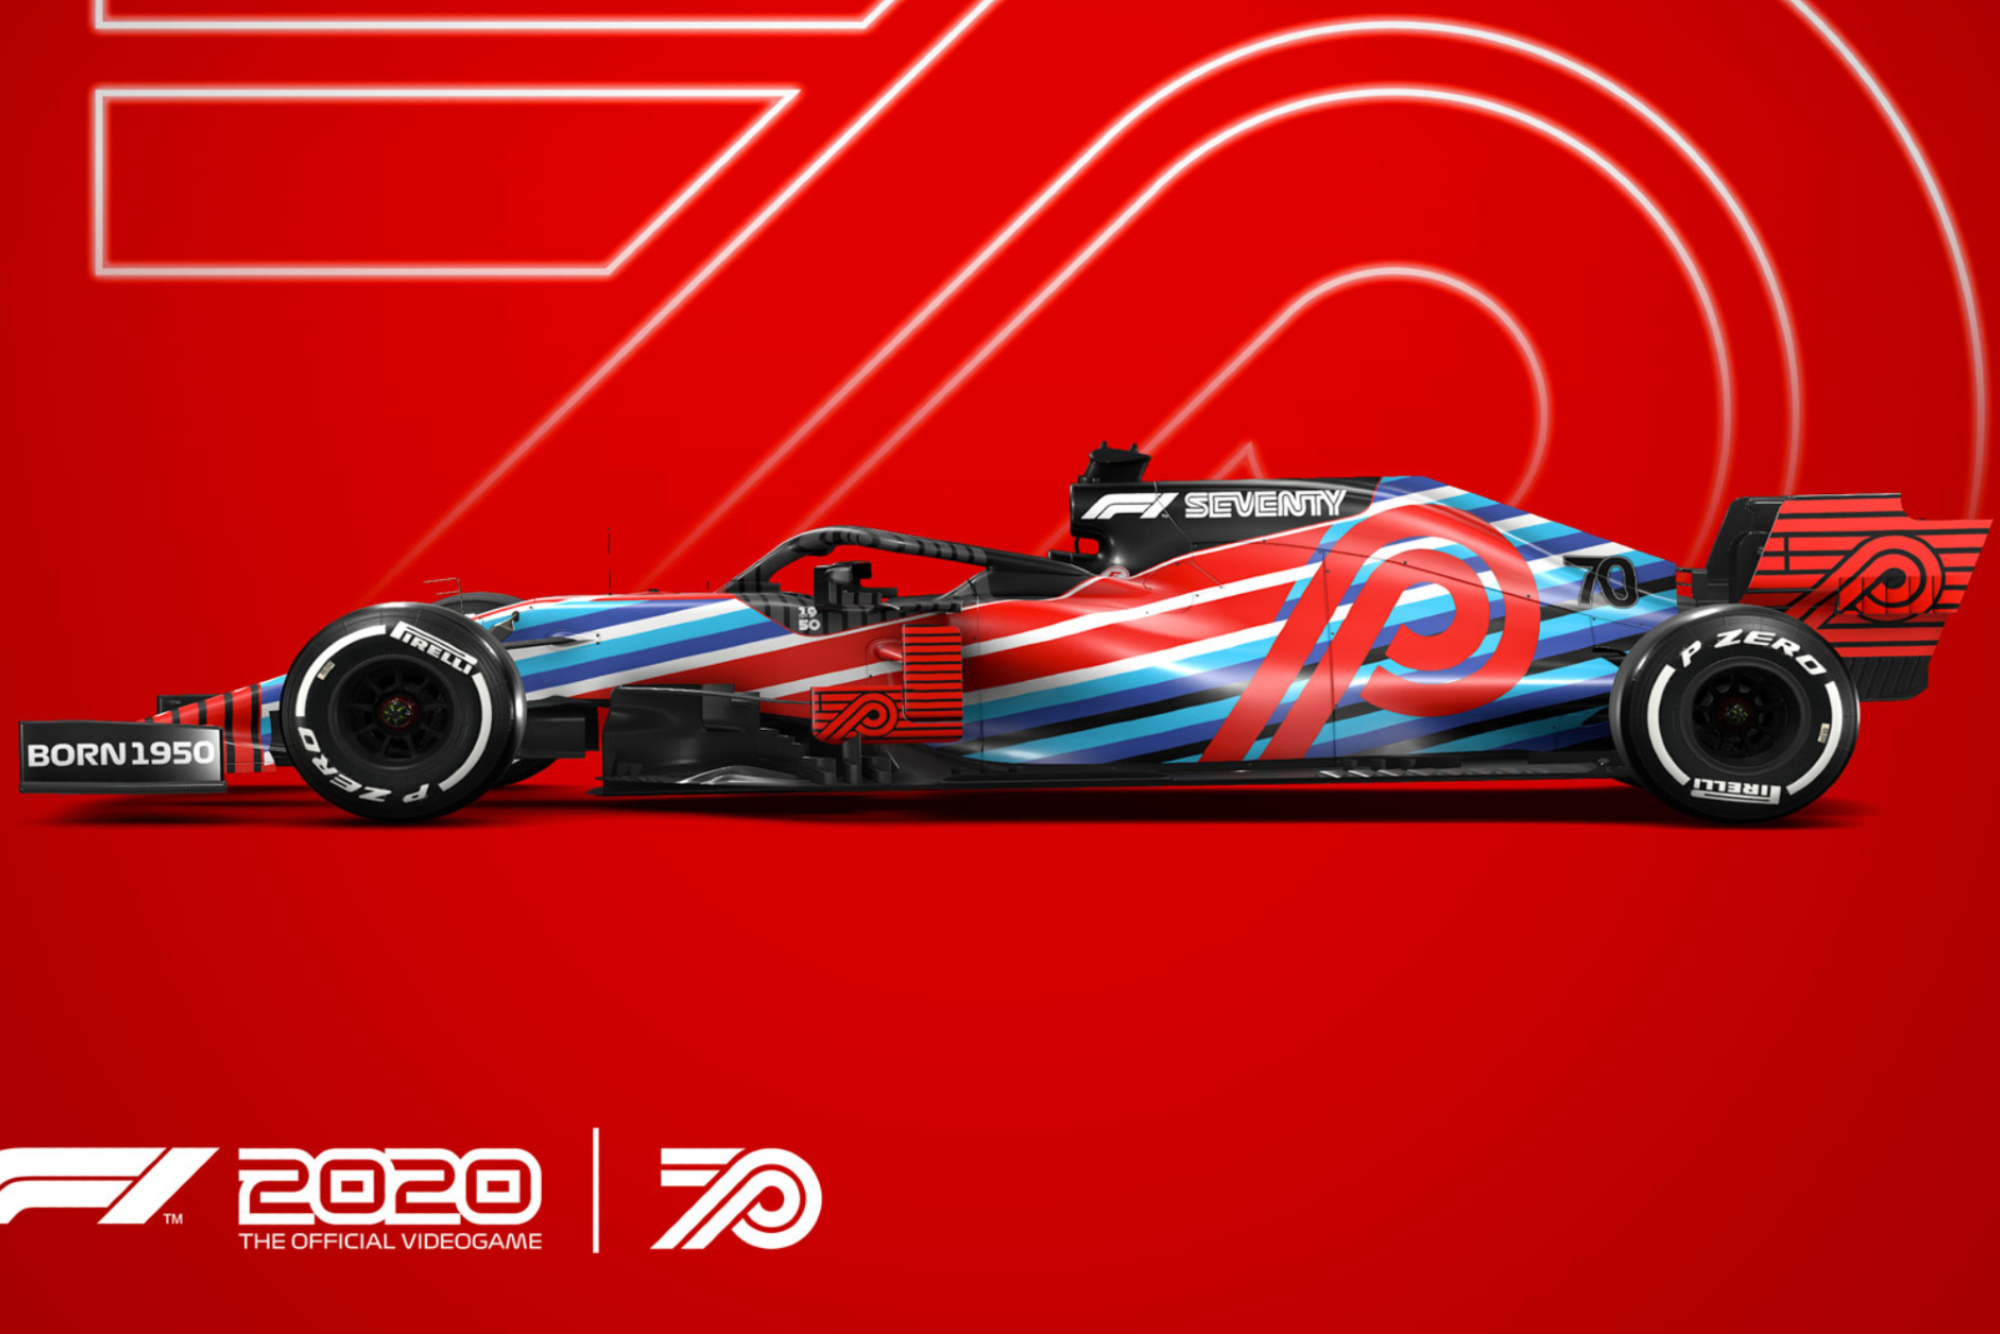 F1 2020 game to launch in July, allowing players to create 11th team on grid